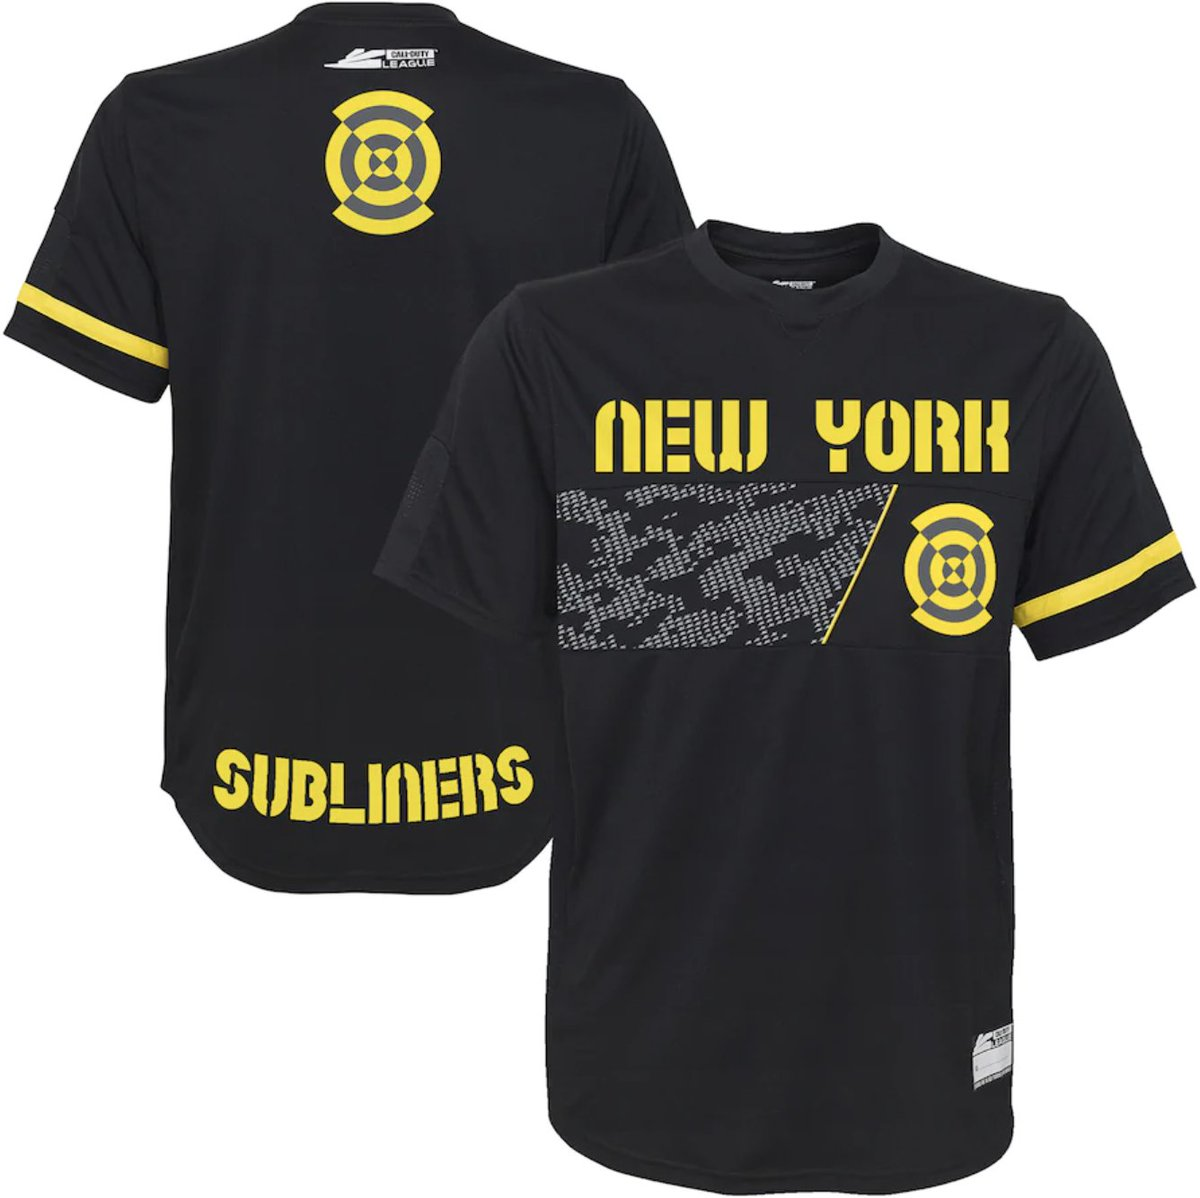 We think you'd look good in yellow. We're giving away 5 NYSL jerseys, so you can look just like the pros. All you have to do is:   ☑️ Follow @Subliners on Twitter 🎯 Retweet this post 🎮 Reply and tag a friend who can fry like the best of them  #NYSL https://t.co/U2gYoN5ecp